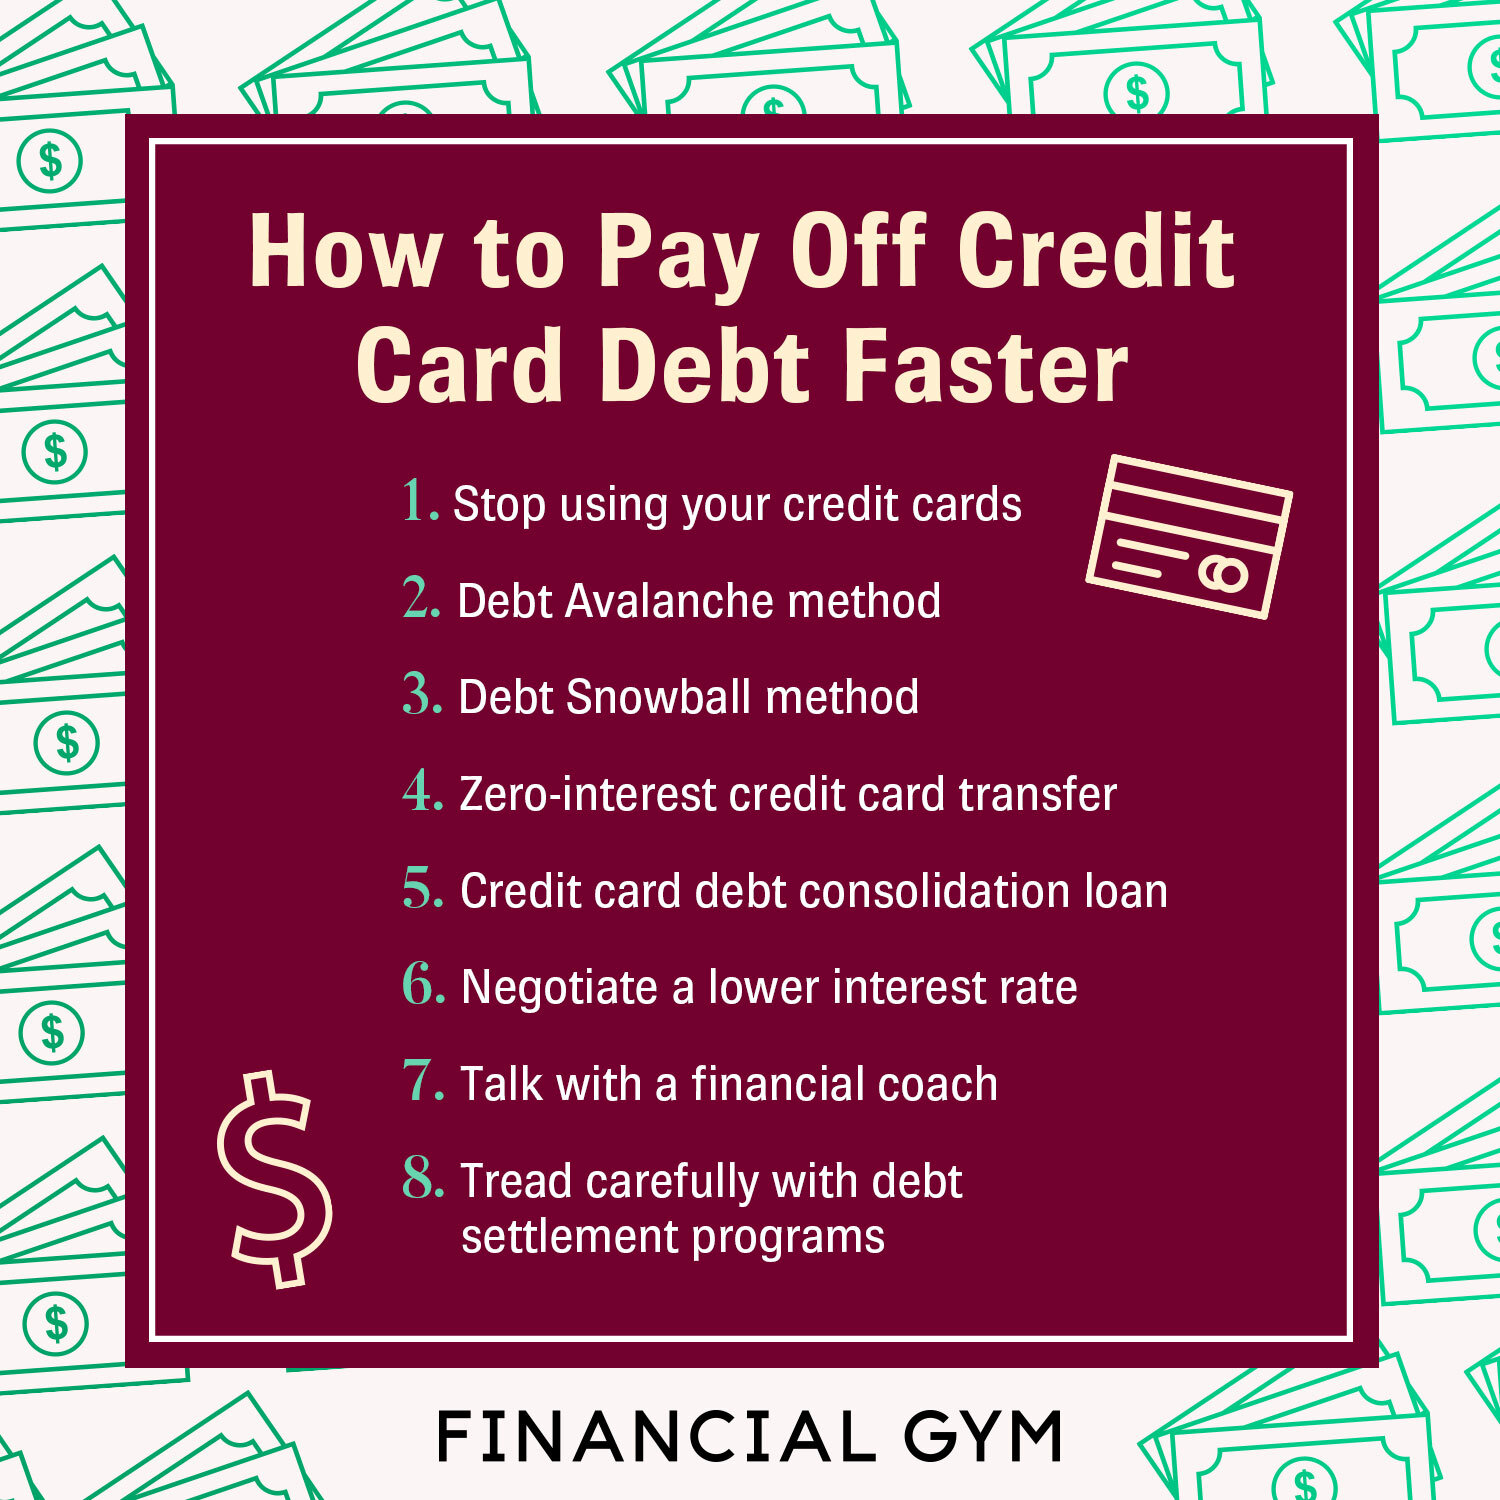 How to Pay Off Credit Card Debt Faster